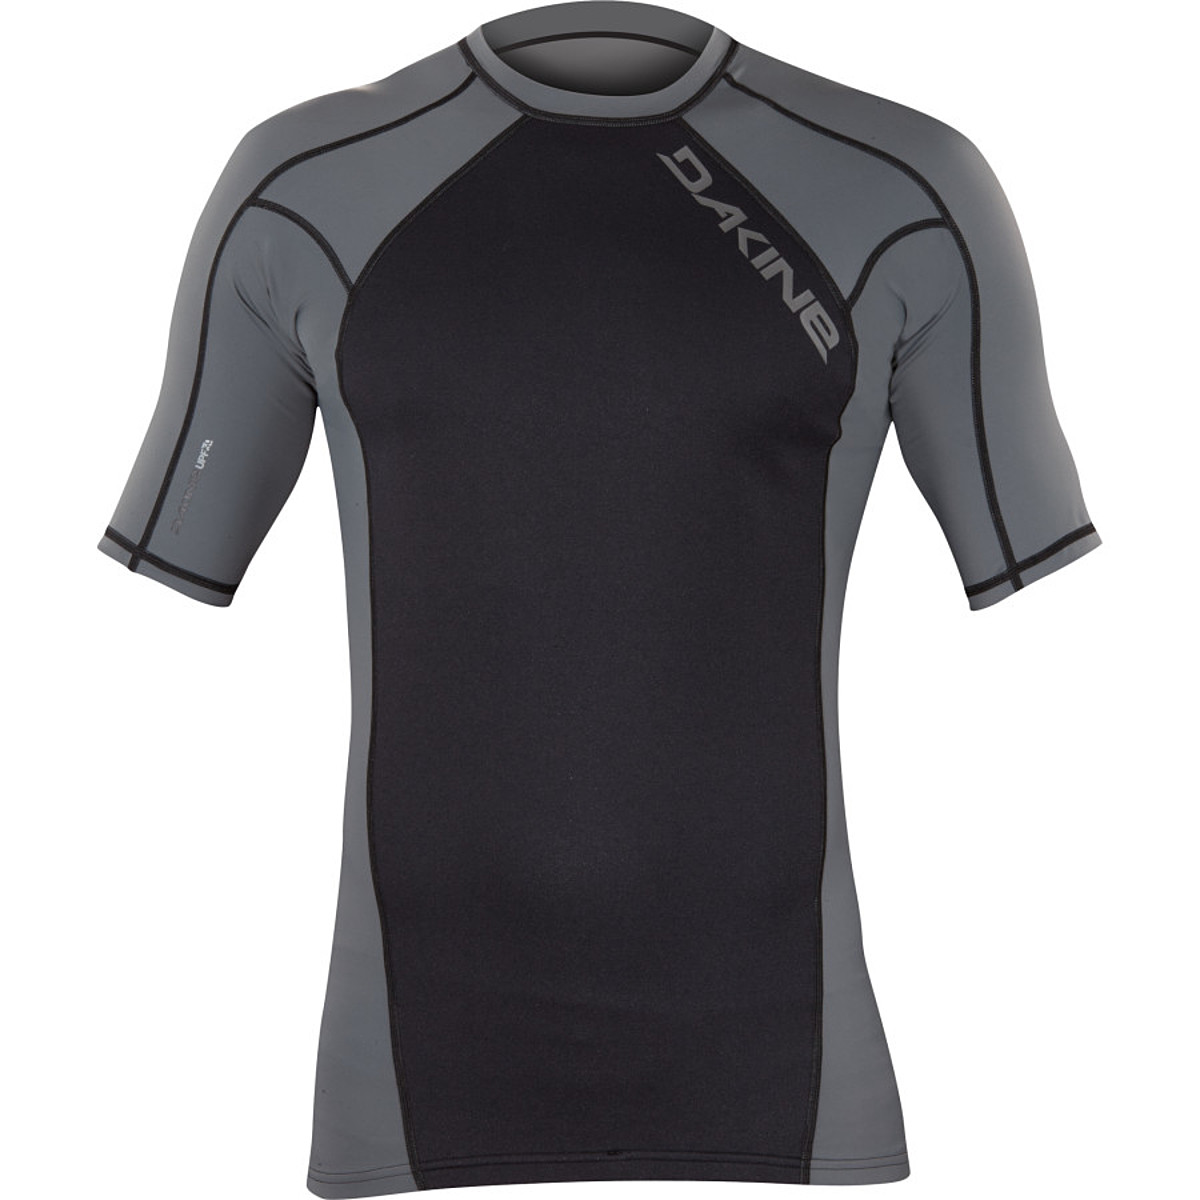 photo: DaKine Men's Neo-Insulator S/S Rashguard short sleeve rashguard